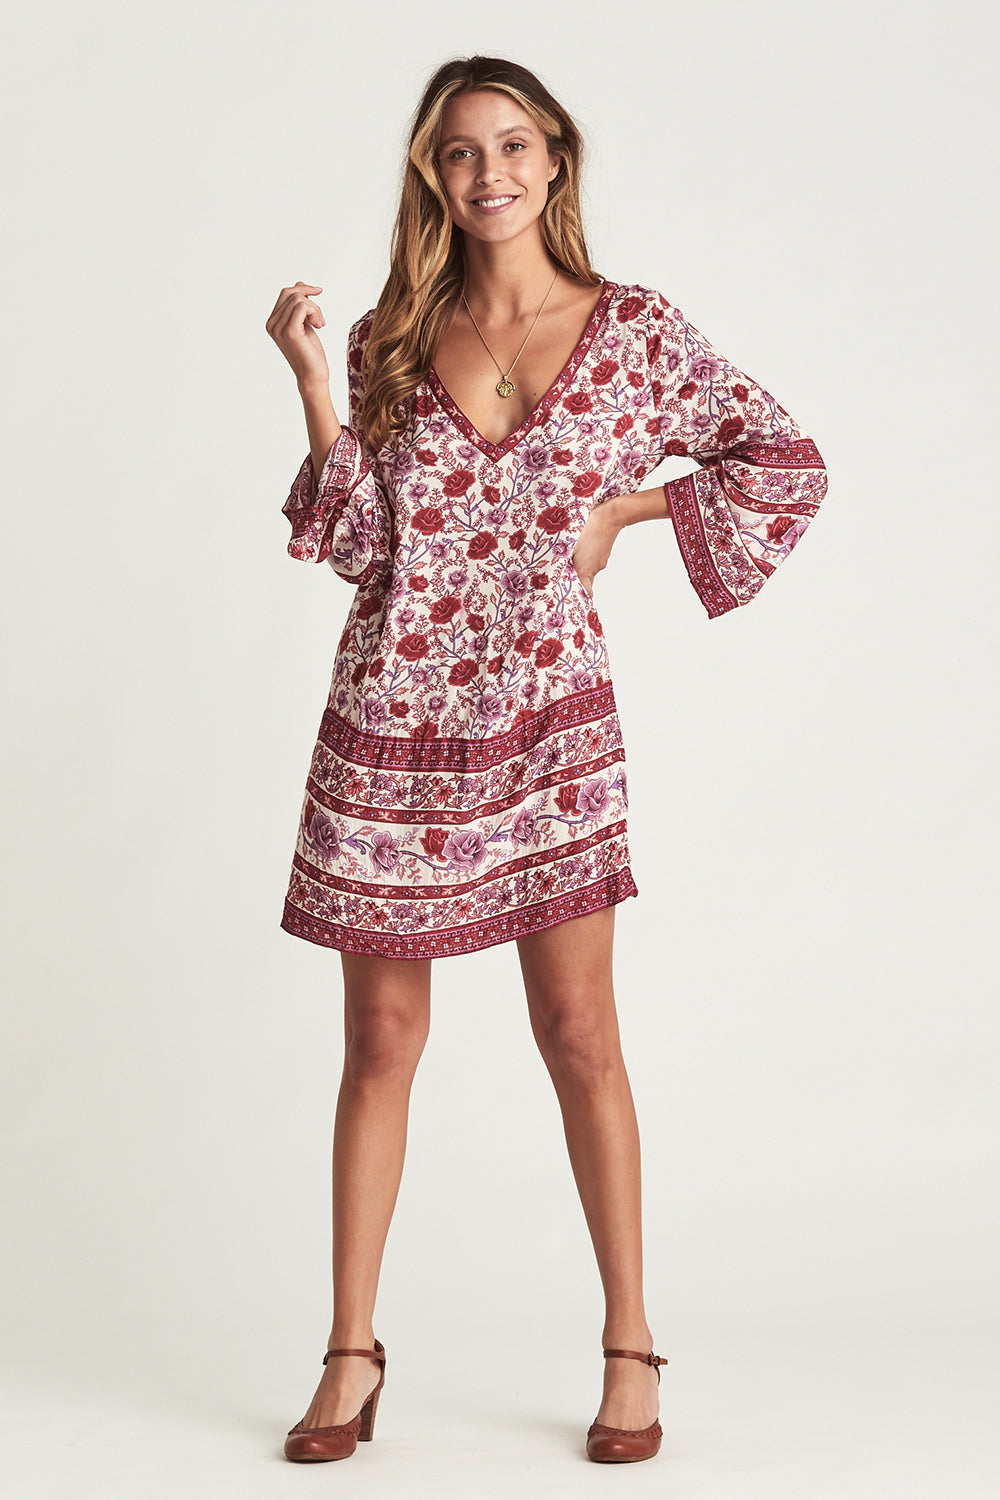 Muse Kaftan Dress in Roseto